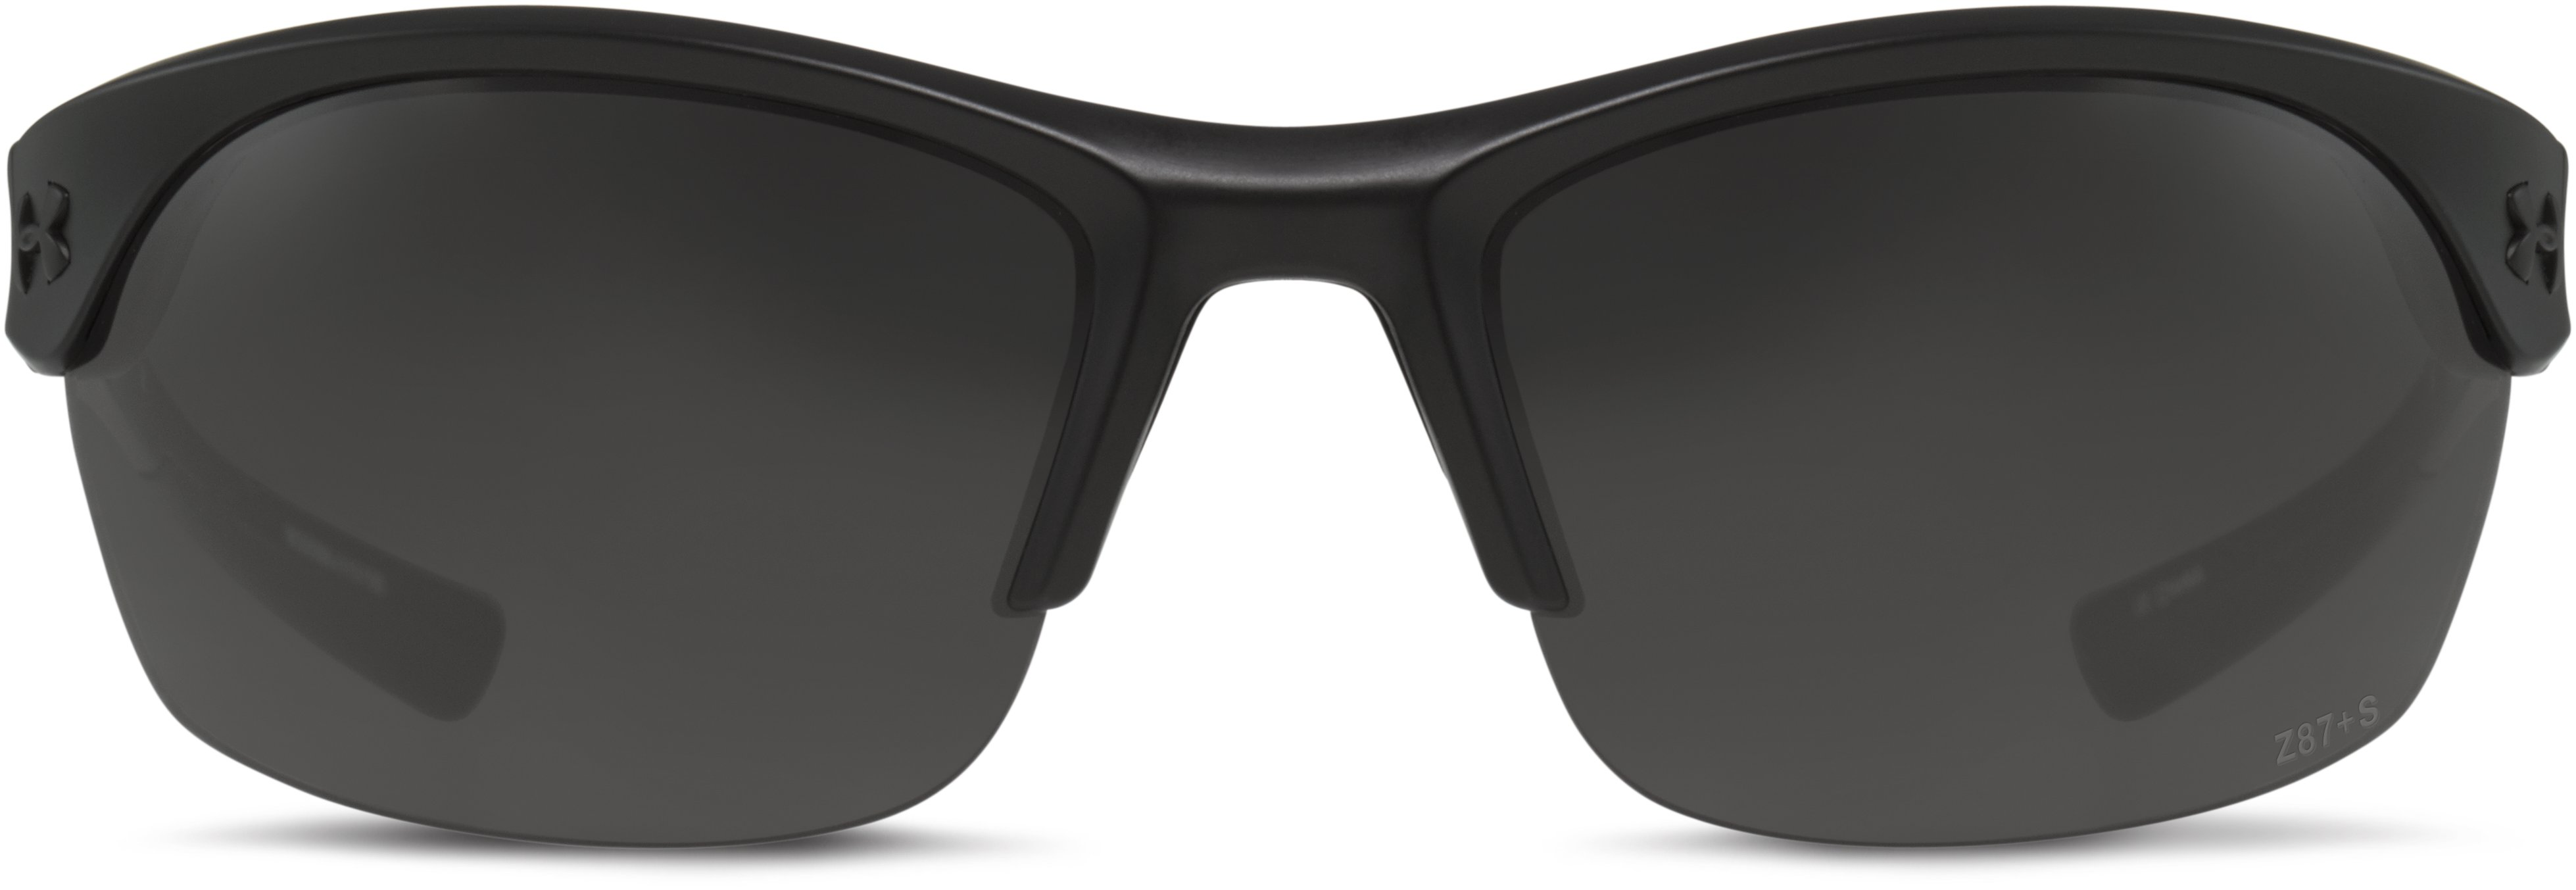 Women's UA Marbella Sunglasses, Satin Black